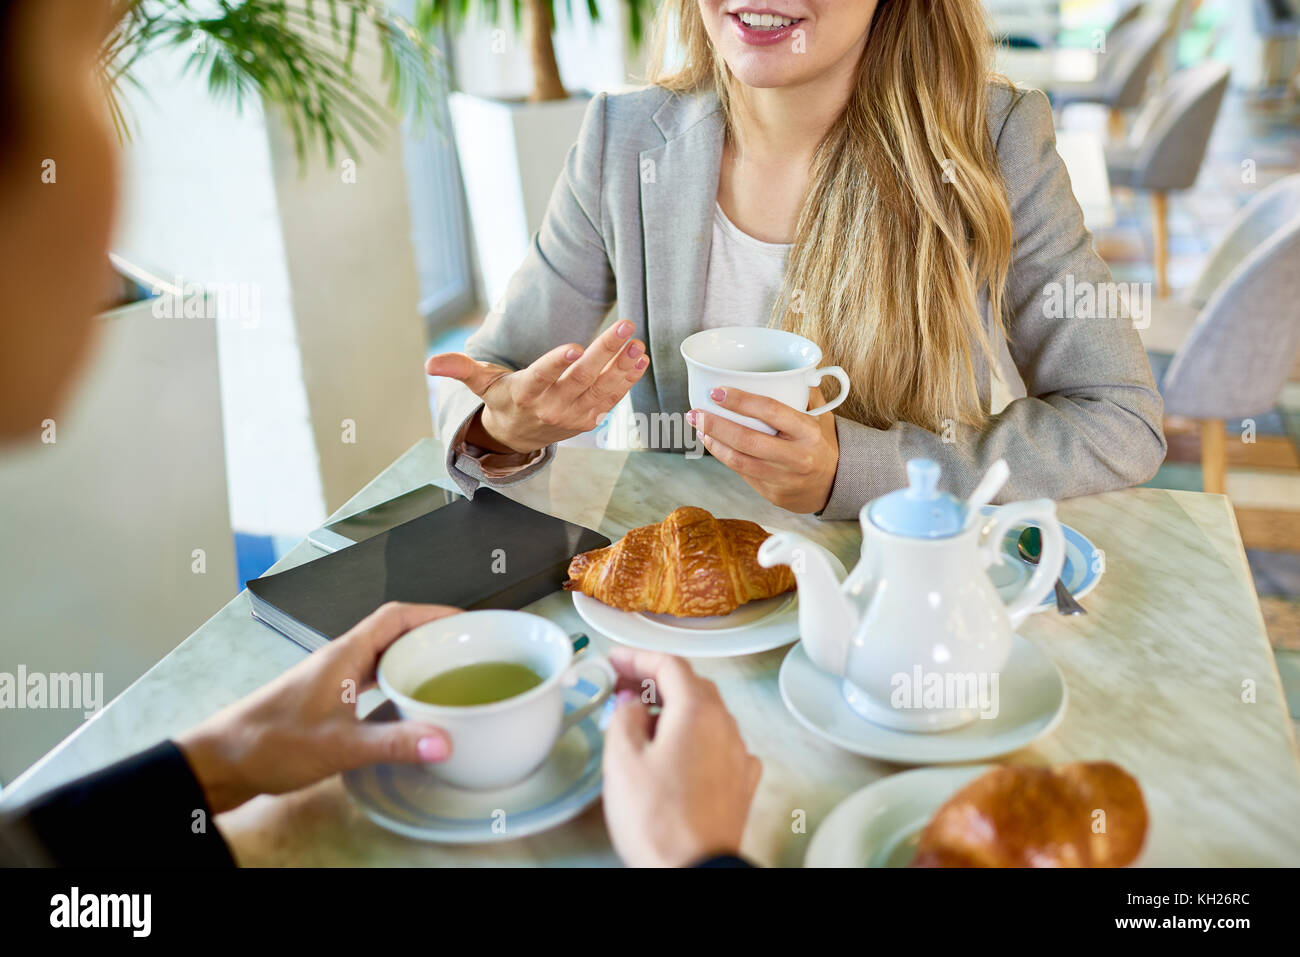 Portrait of two young women chatting gesturing actively during lunch break at cafe table with coffee and croissants - Stock Image